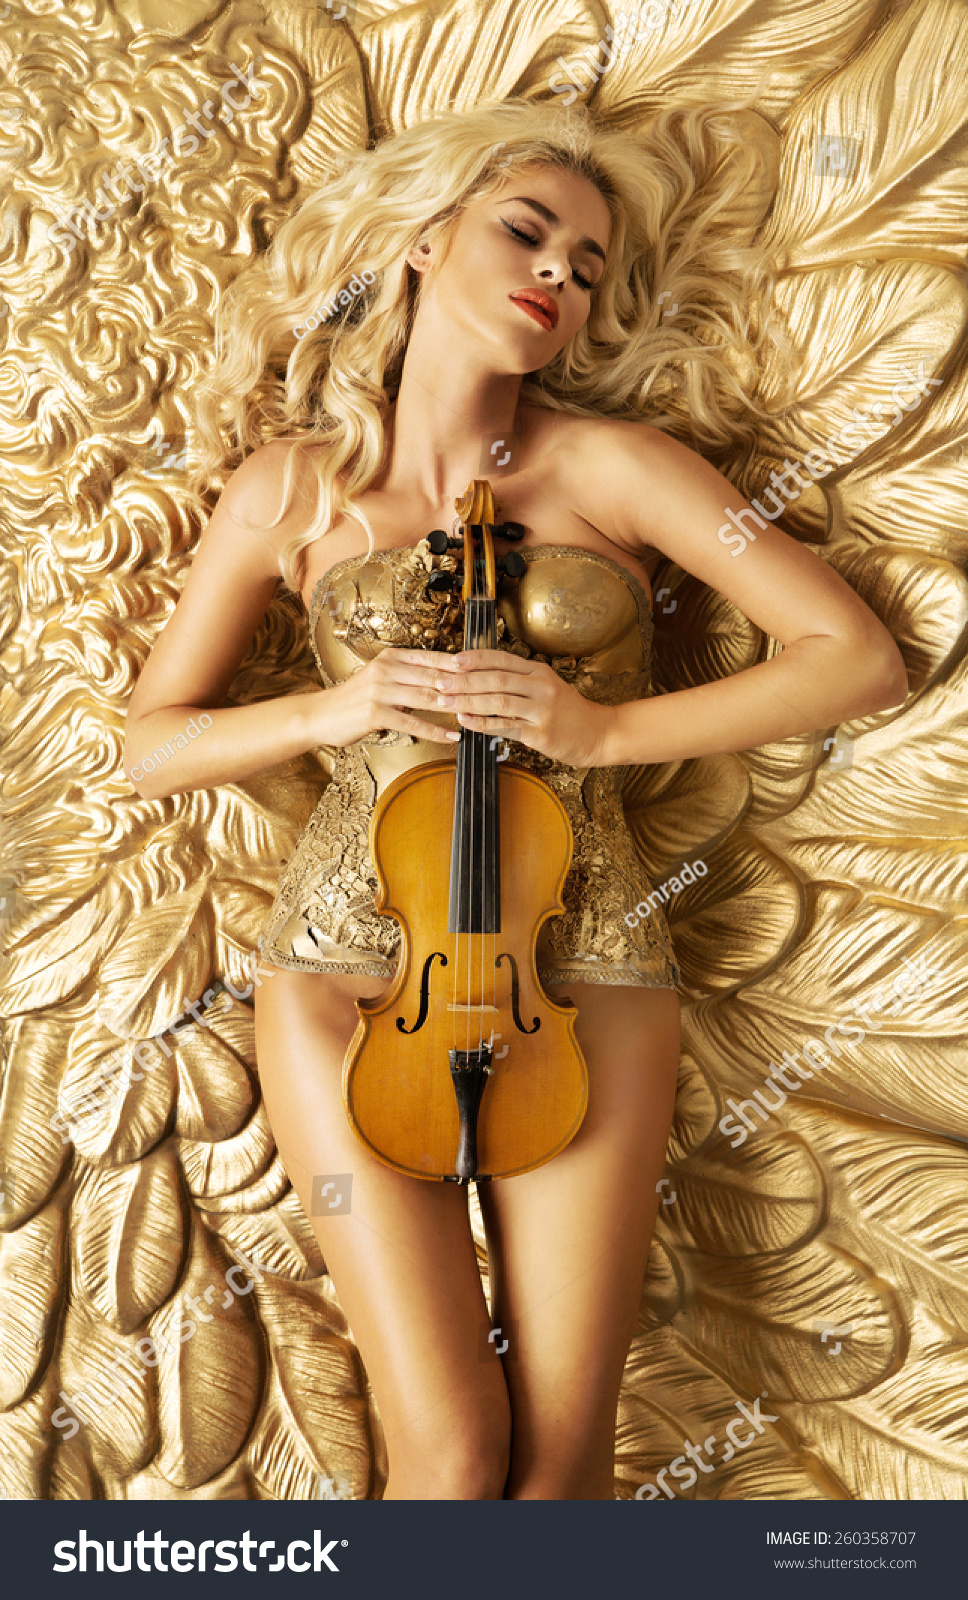 lady nude violinist images